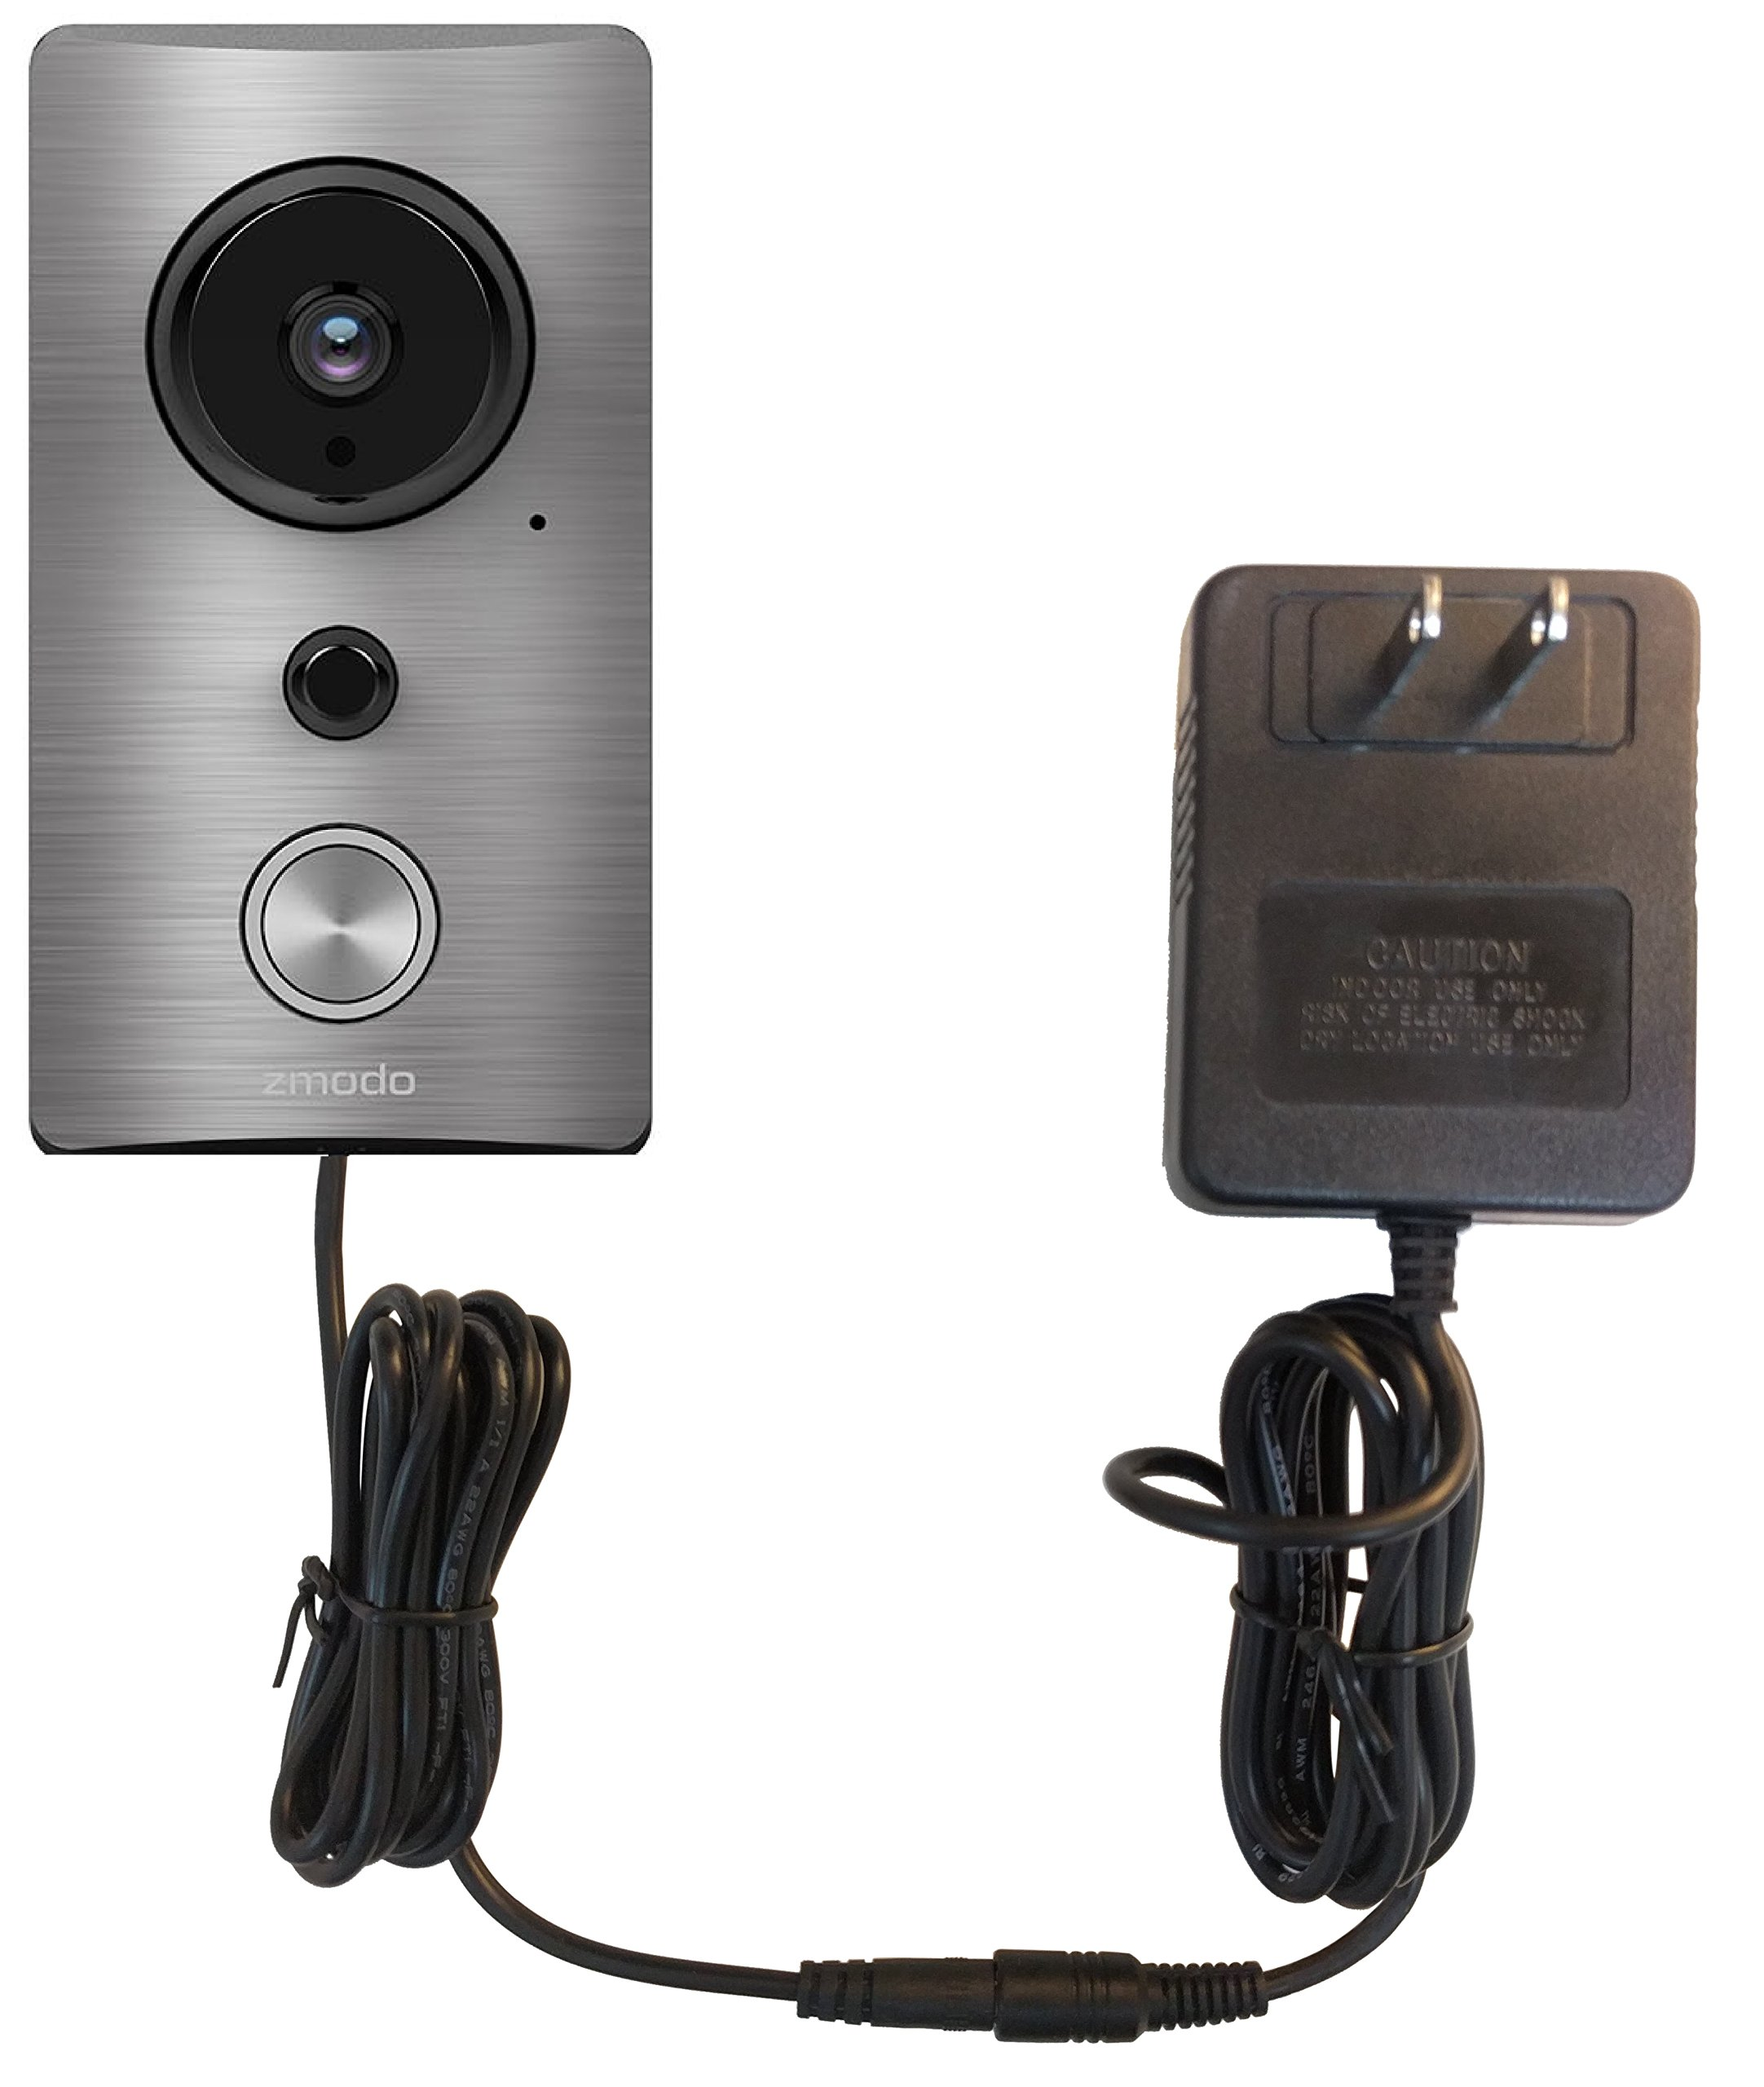 OhmKat Video Doorbell Power Supply - Compatible with Zmodo Greet - Needs No Existing Wiring - Transformer, Adapter, Power Kit & Supply All In One